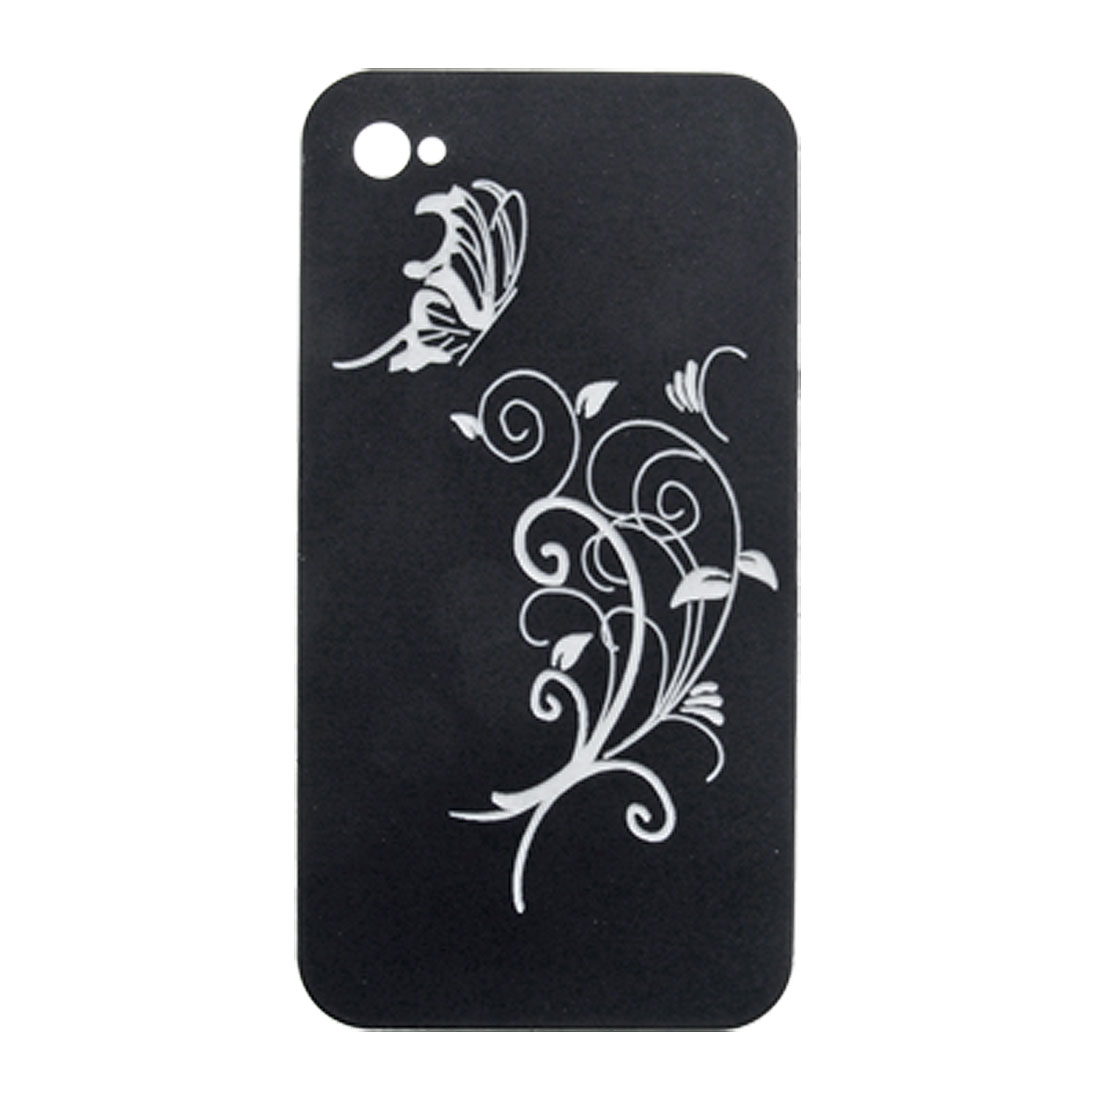 Black White Butterfly Flower Style Hard Case for iPhone 4 4G